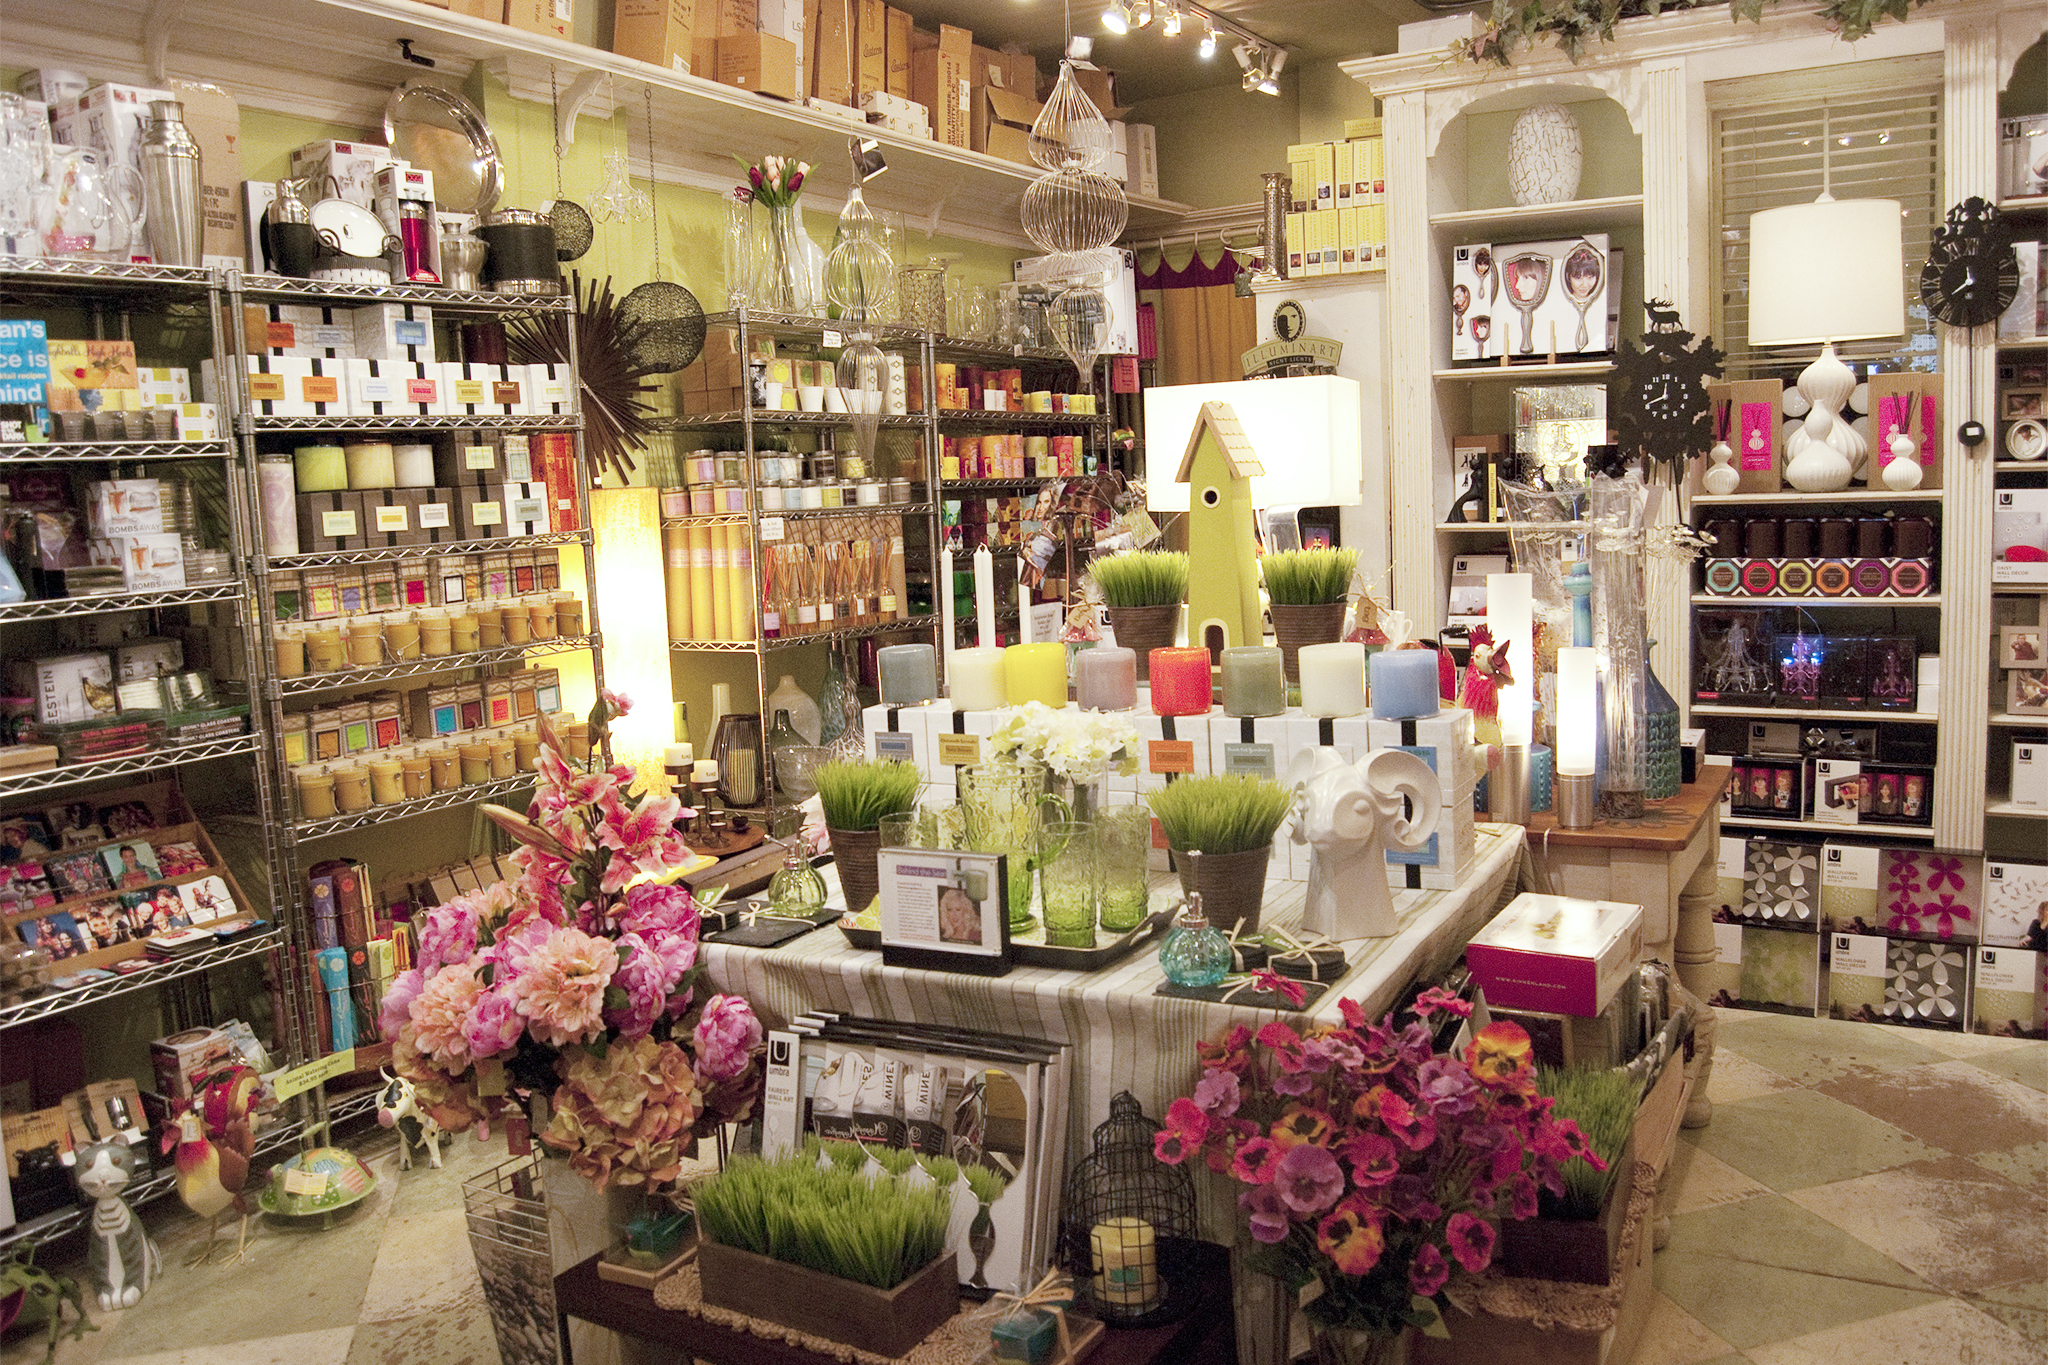 delphinium home - Home Decor Stores Near Me